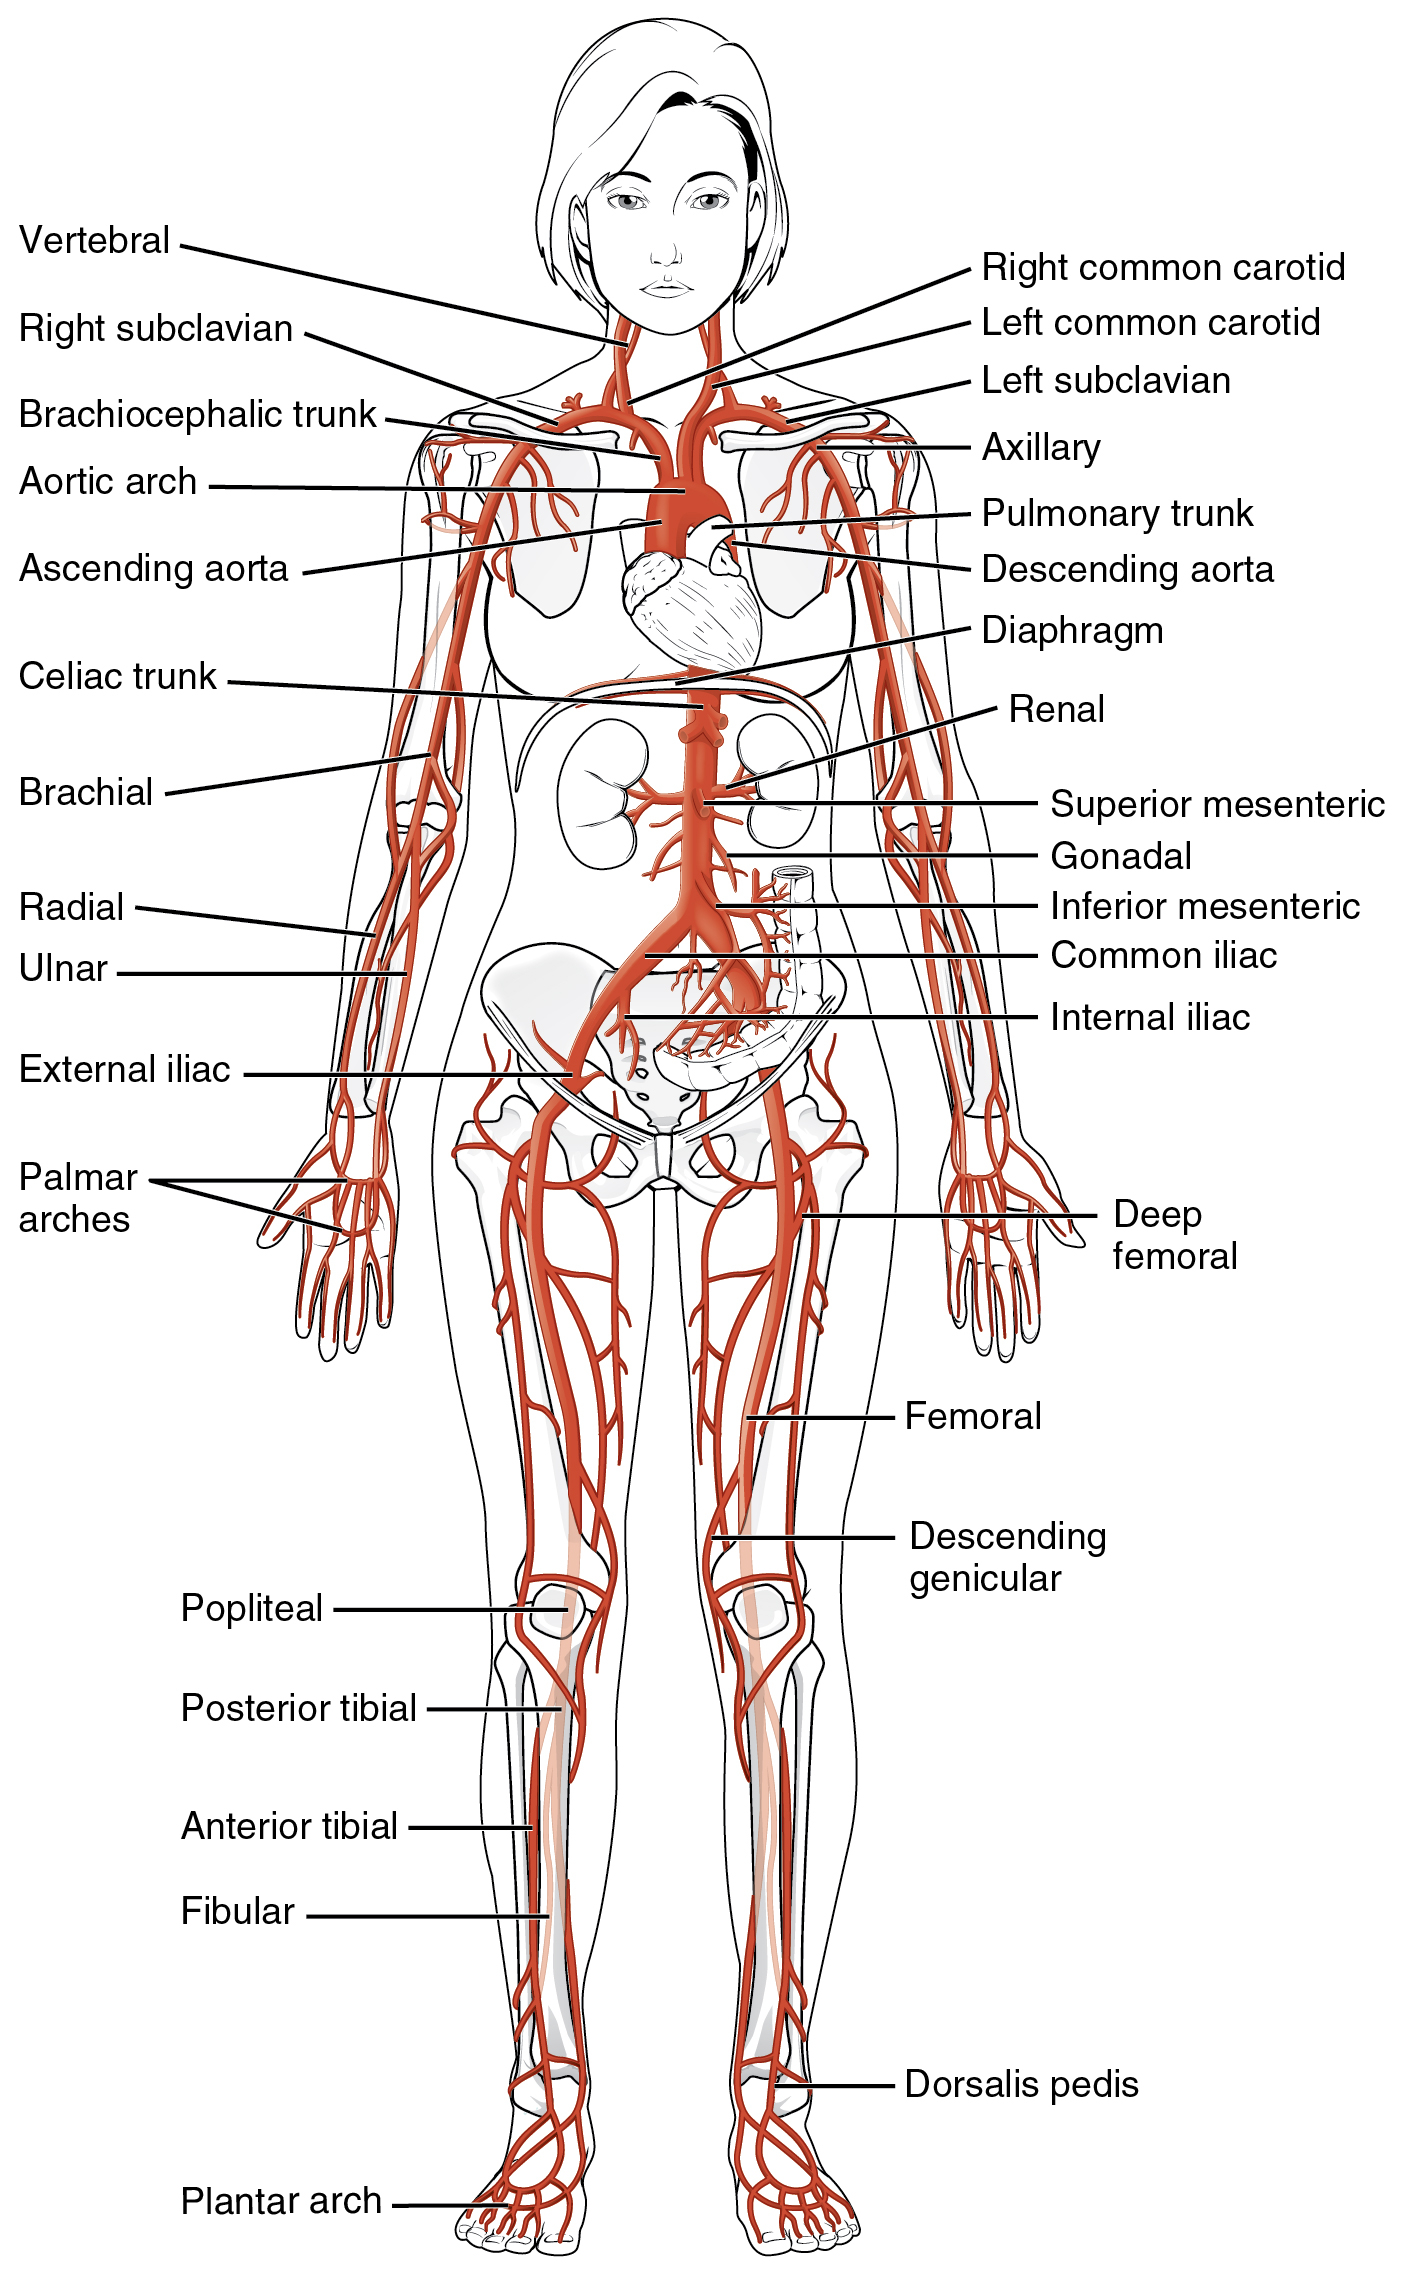 Veins And Arteries Diagram 205 Circulatory Pathways Anatomy And Physiology